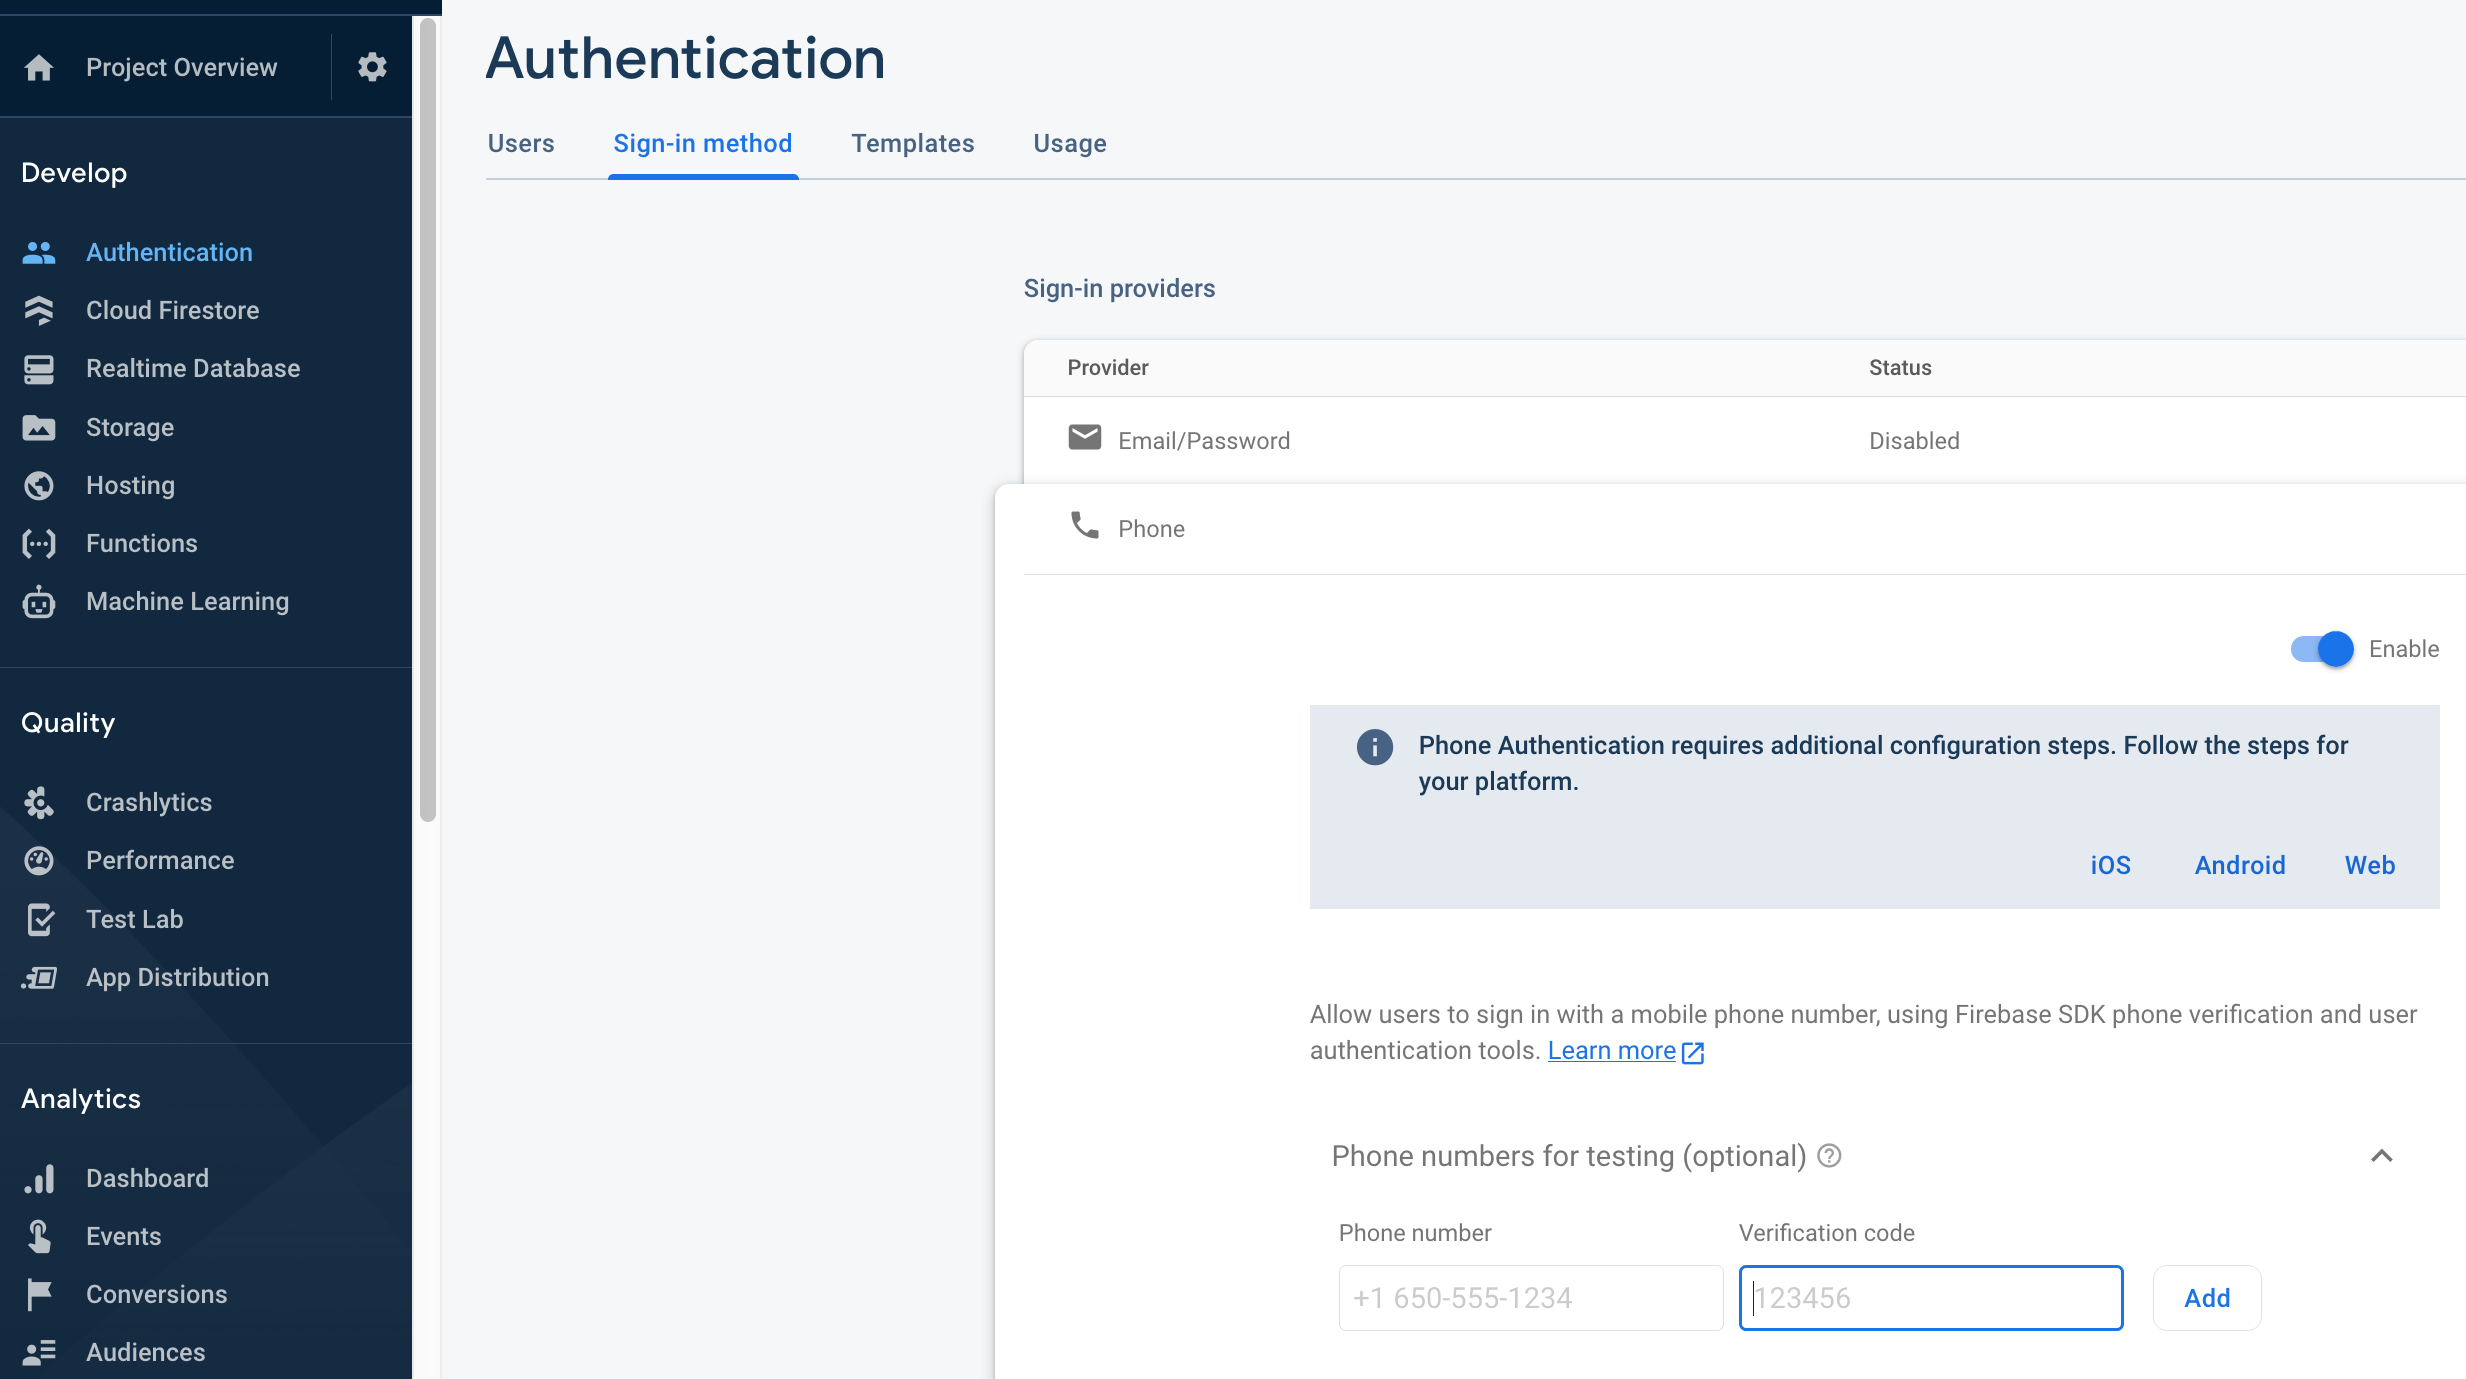 PhoneAuthentication